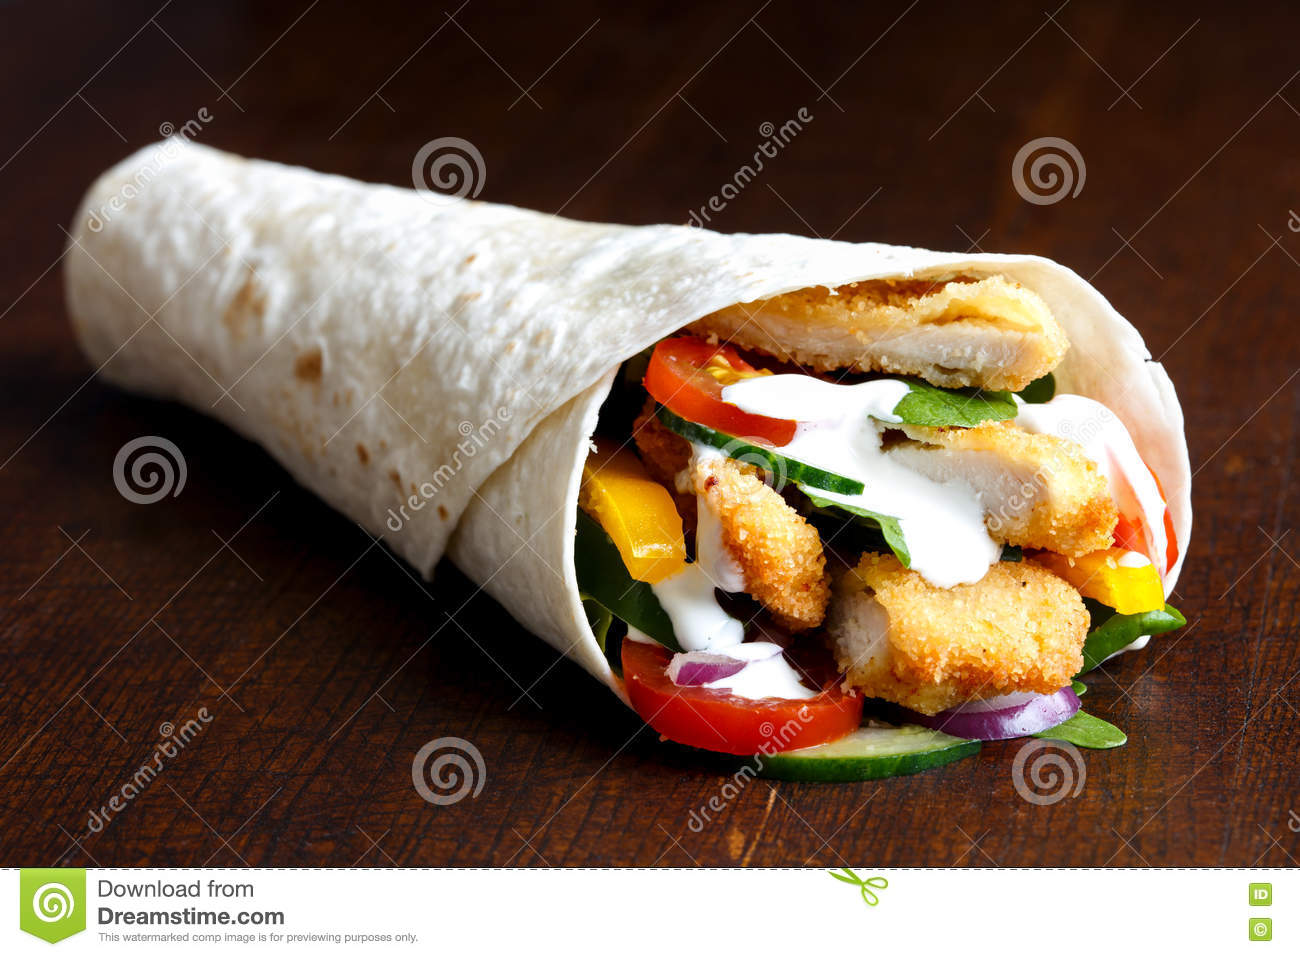 Crumbed fried chicken and salad tortilla wrap with white sauce i